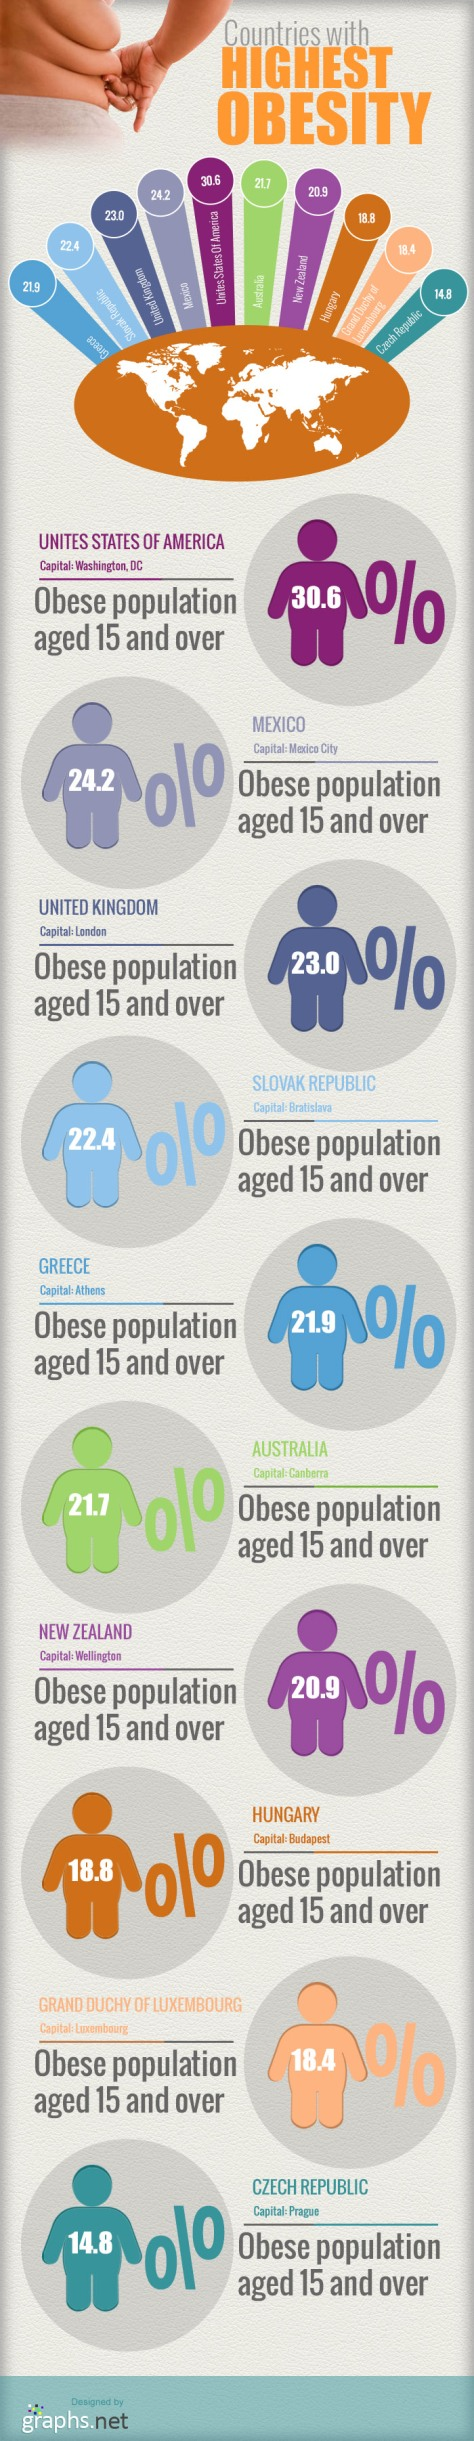 Highest Obesity Countries